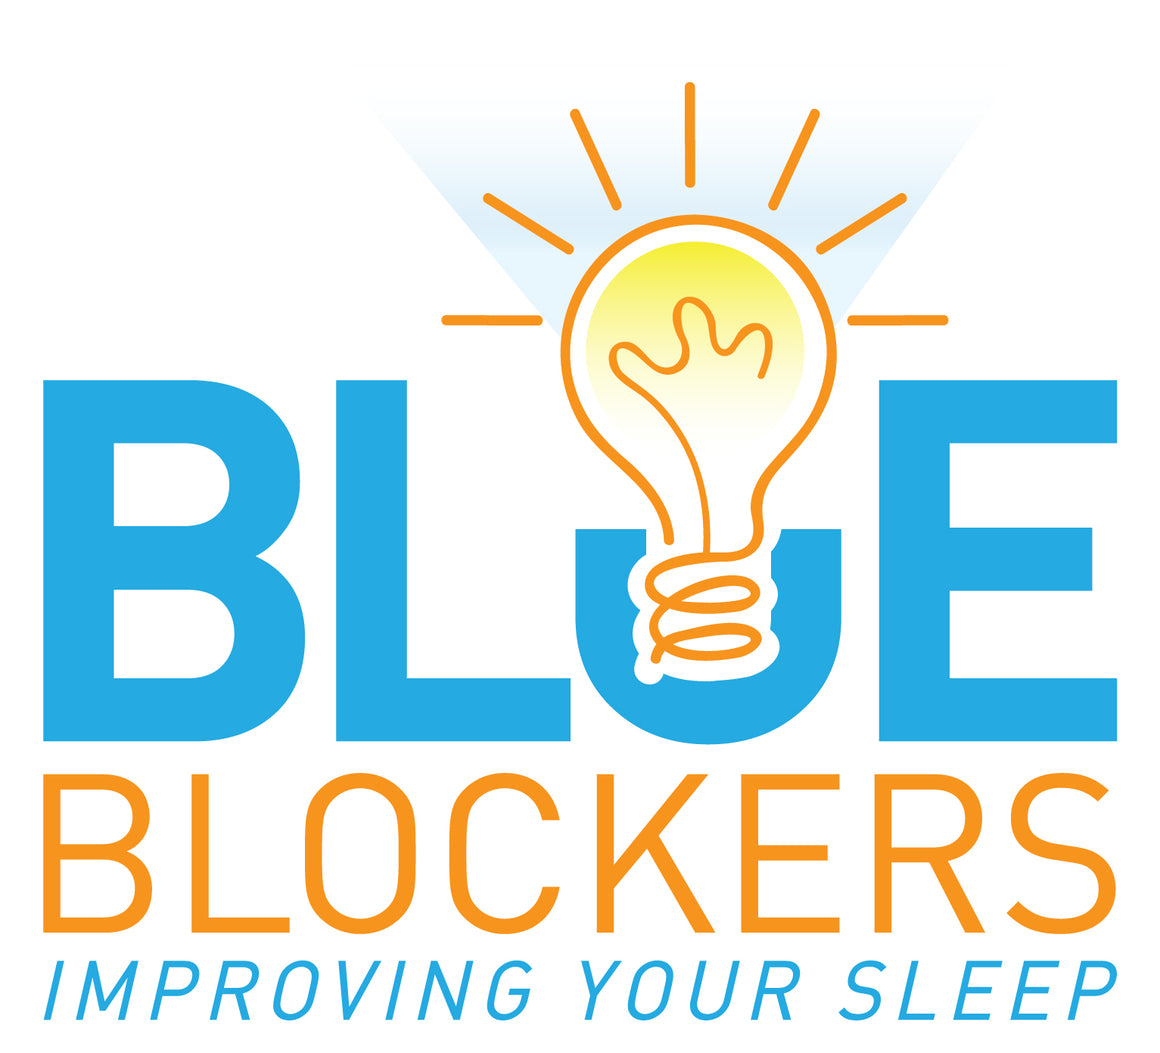 Blue Blockers Newsletter